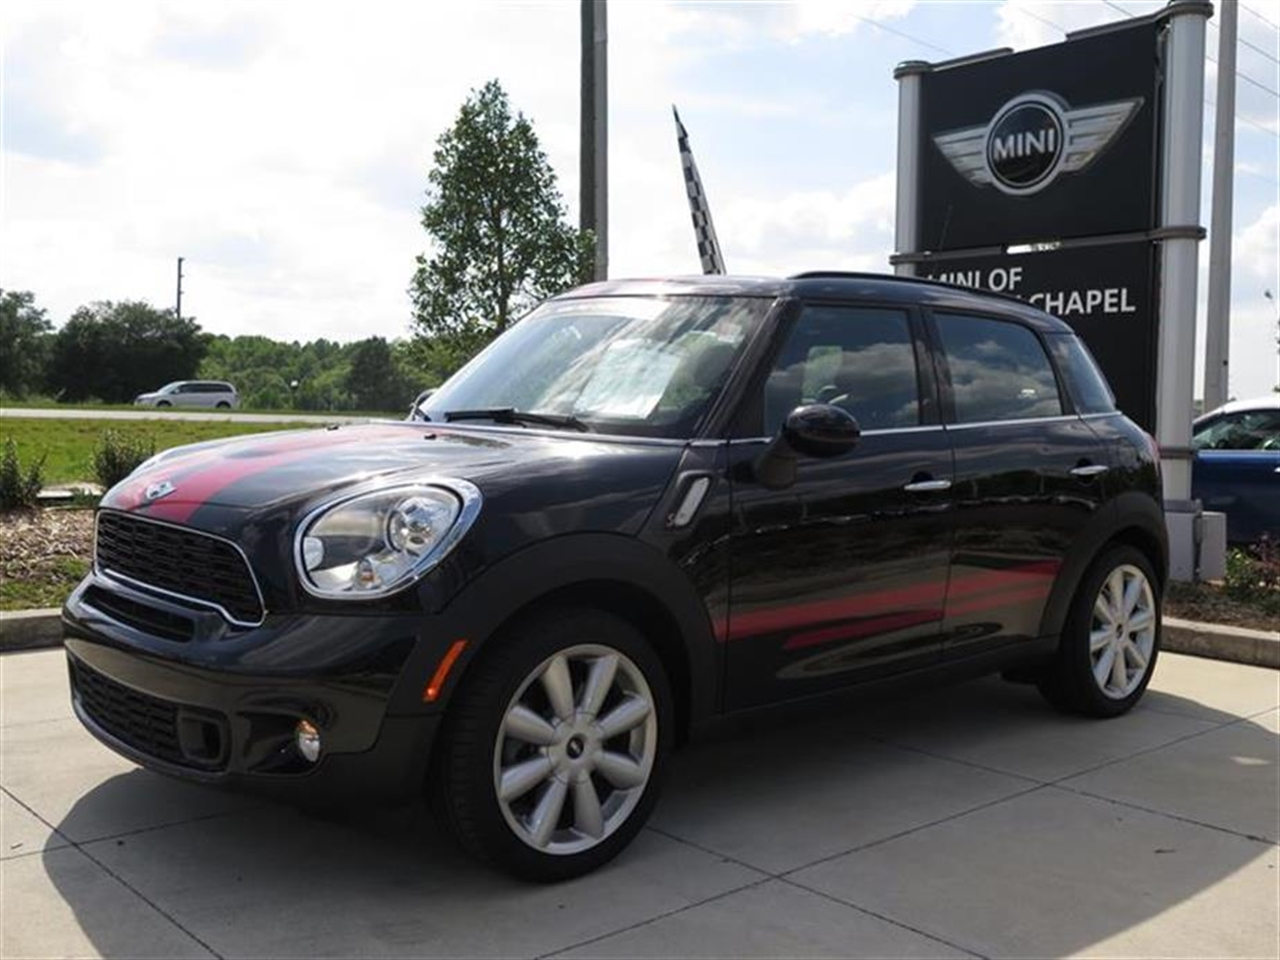 2014 MINI COOPER COUNTRYMAN FWD 4dr S 0 miles 2 Seatback Storage Pockets 3 12V DC Power Outlets